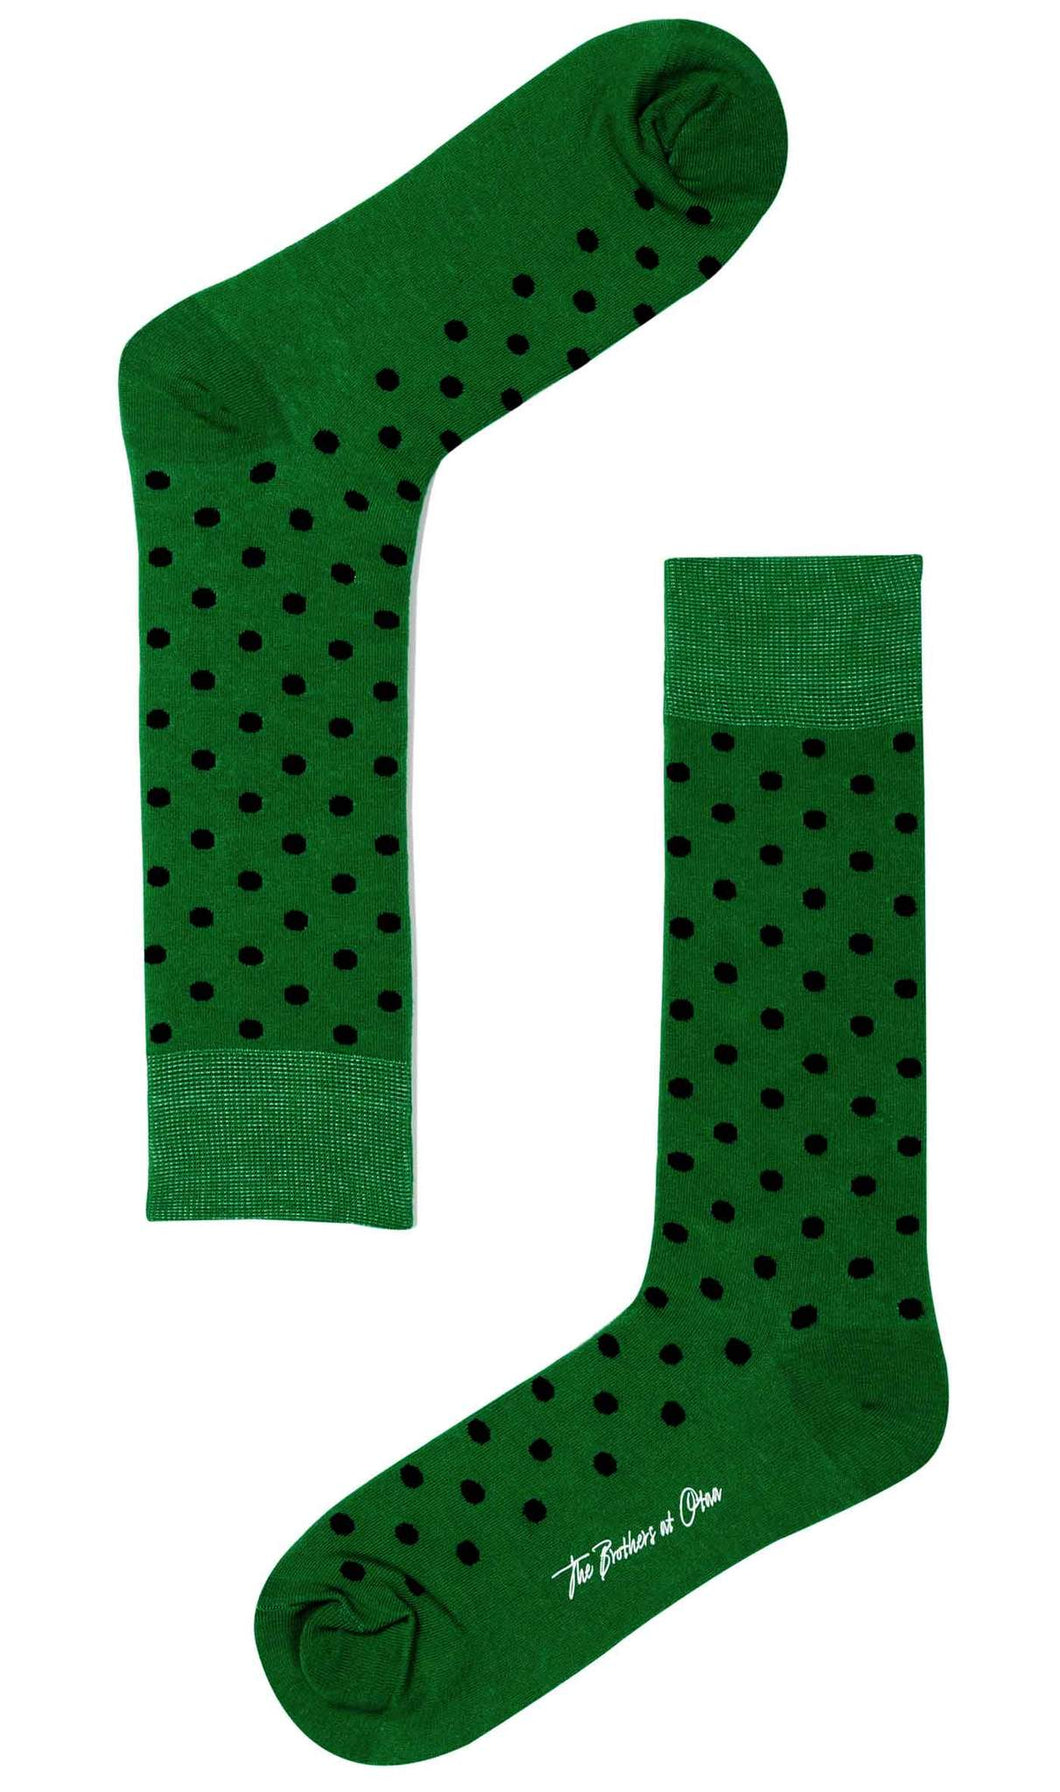 Lucky Green Socks green and black polka dot socks